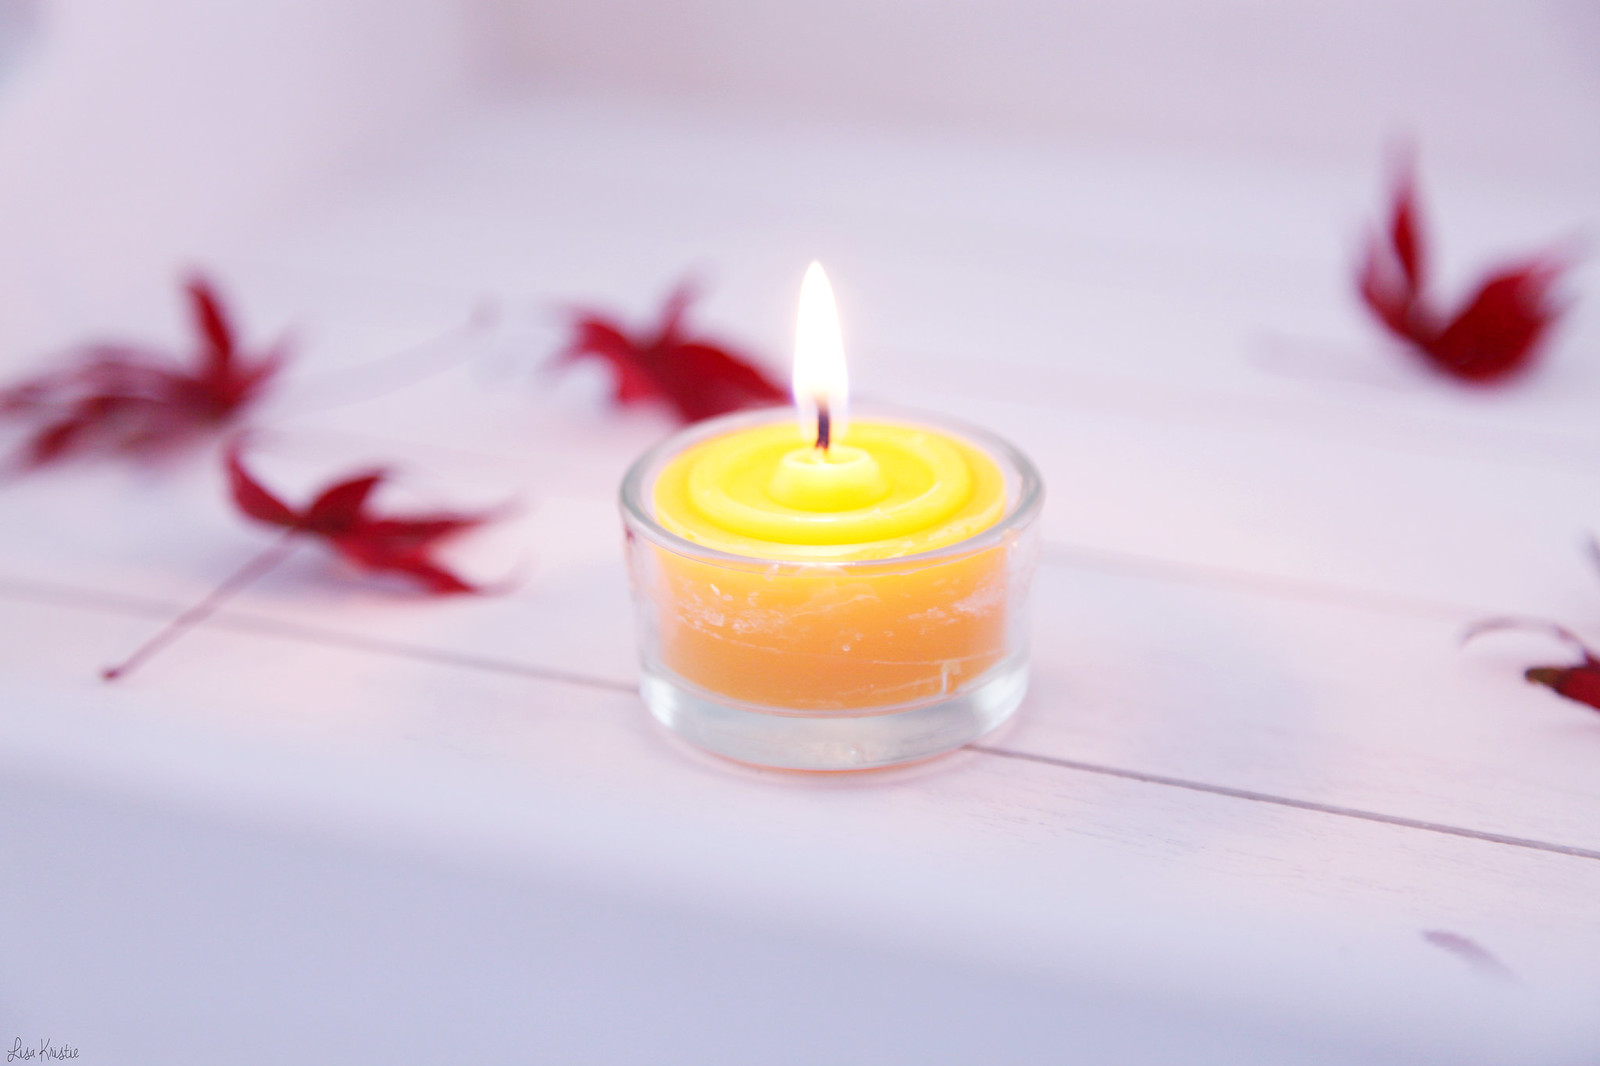 closeup lit flame beeswax natural candles tealights made in europe germany european german company licht blick review customer product purchase home interior kerzen-lichtblick.de naturlich hell